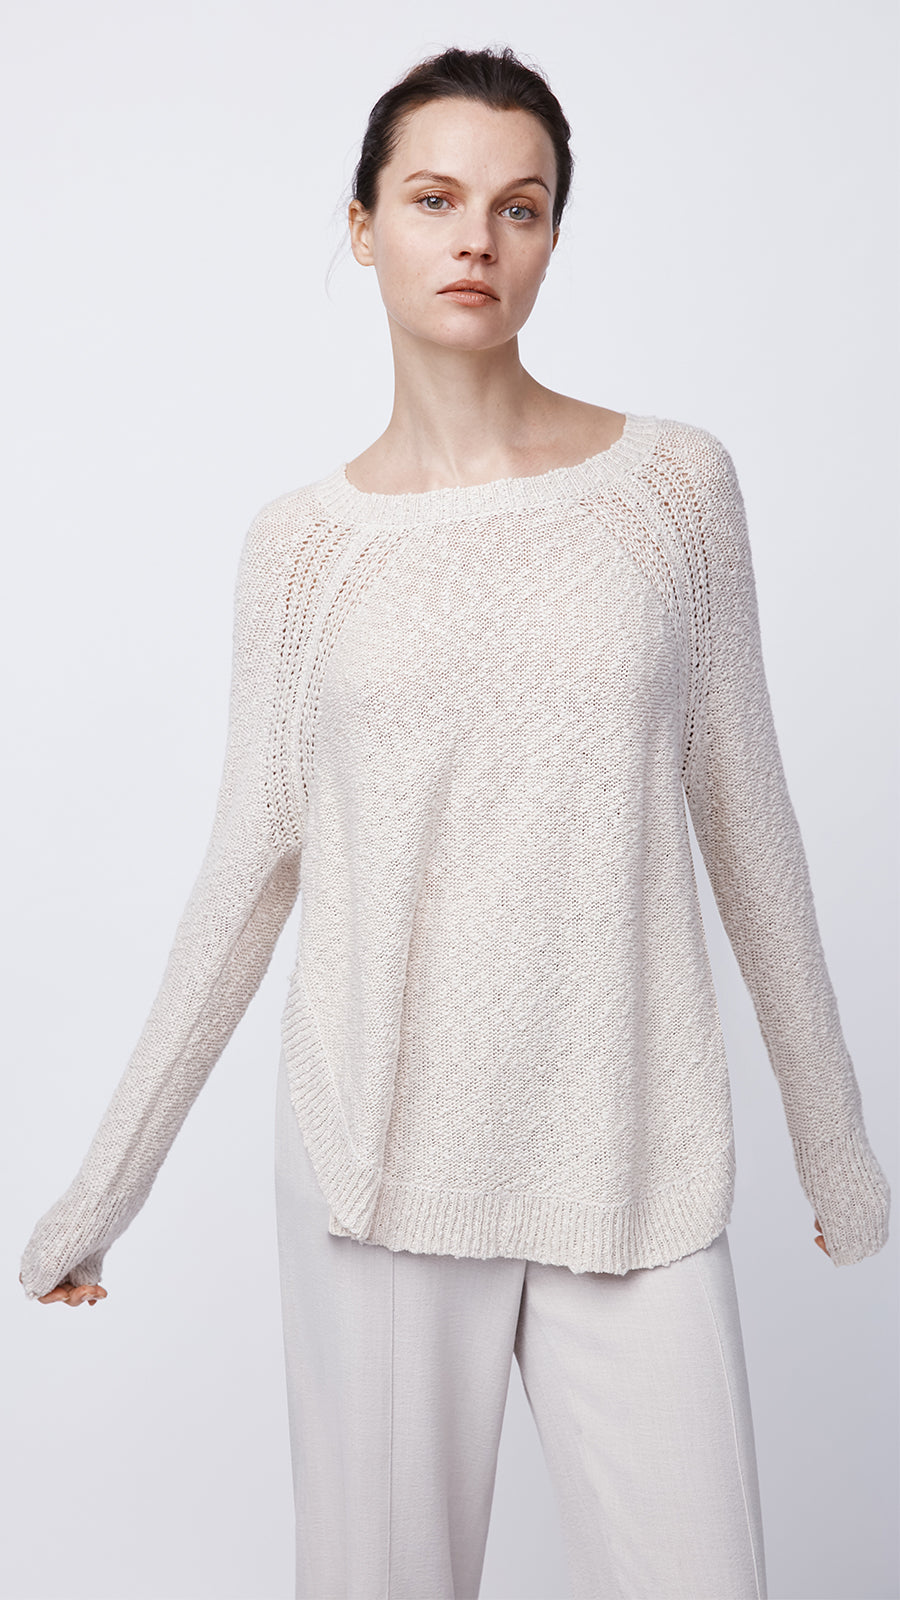 Women's Raglan Crewneck Basic Sweater by b new york